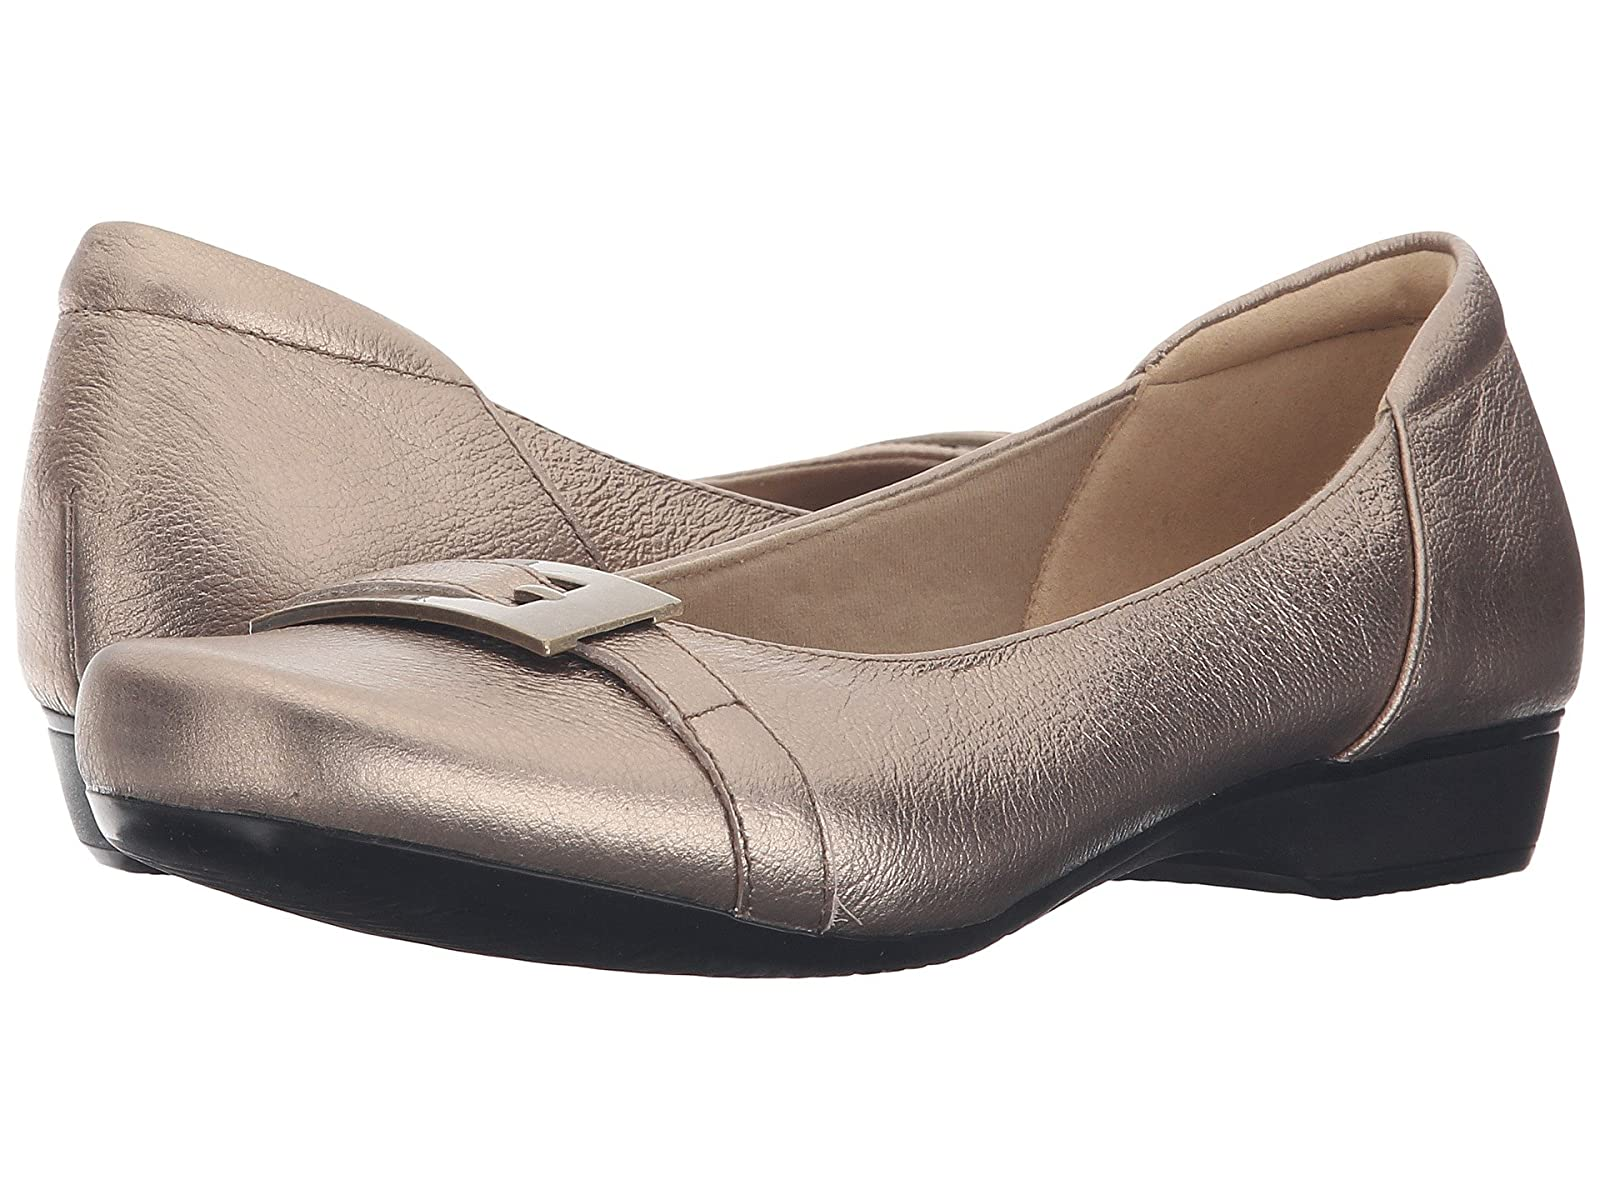 Clarks Blanche WestCheap and distinctive eye-catching shoes